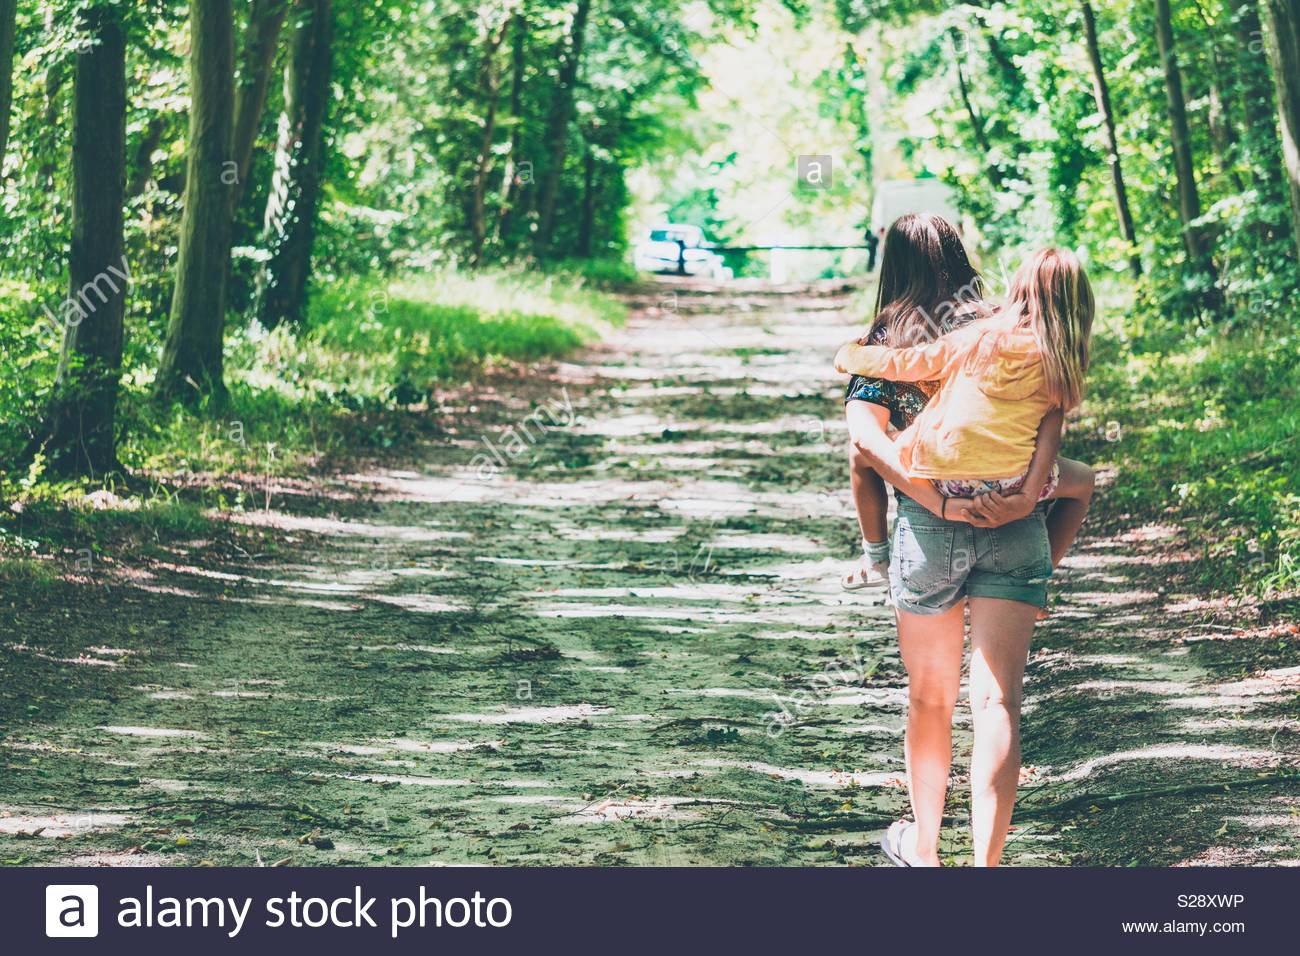 Mother and daughter hiking threw forest - Stock Image